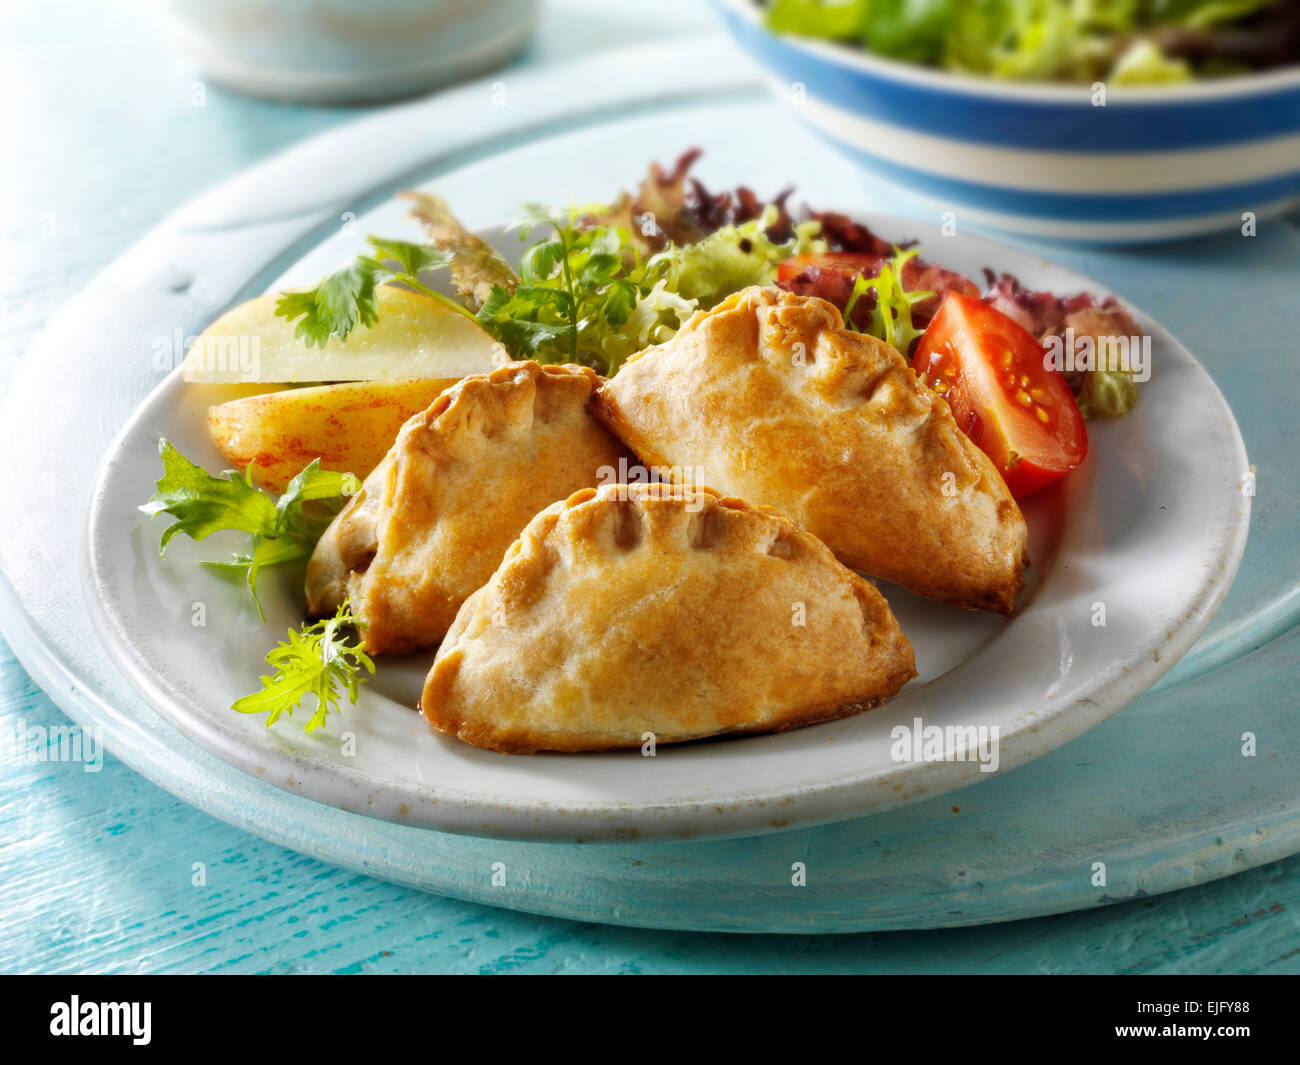 Mini Cornish pasty and salad - Stock Image